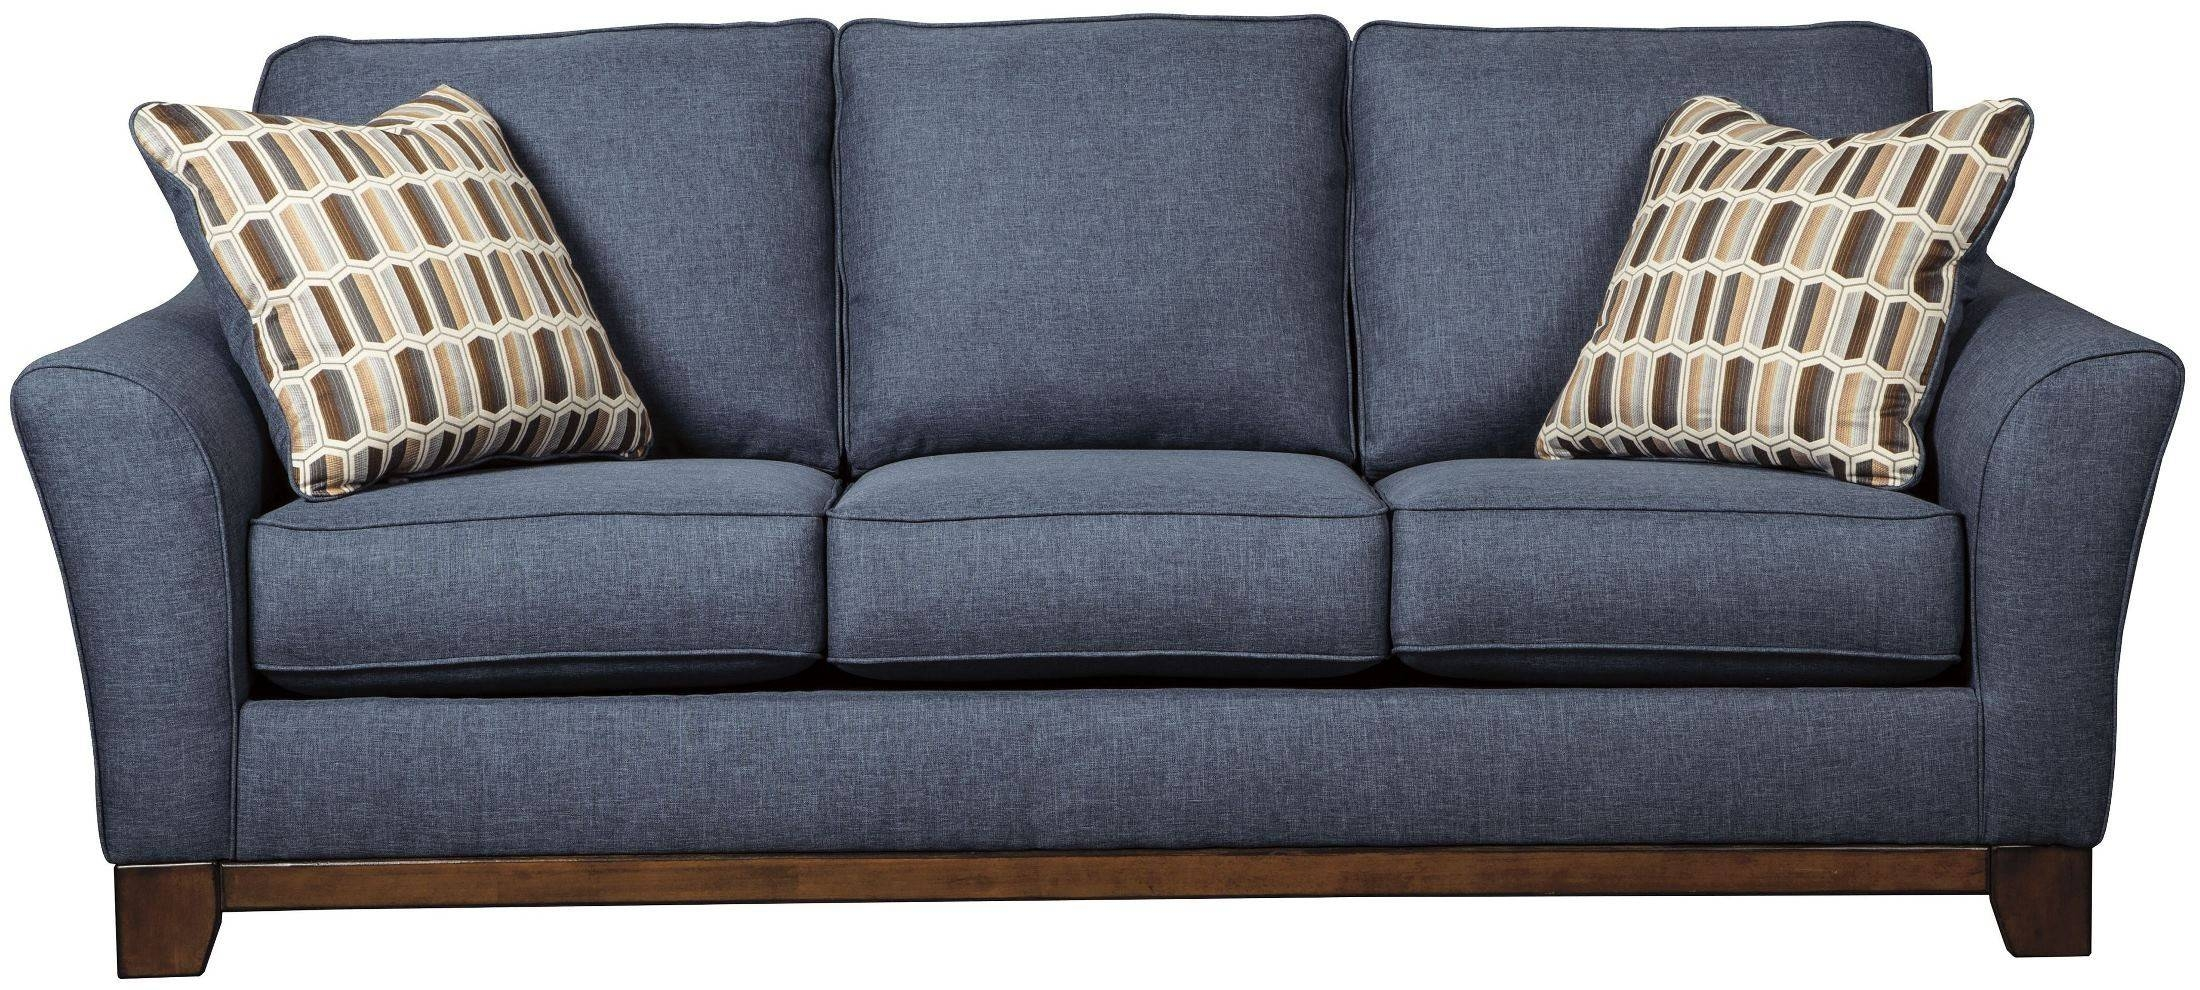 Janley Denim Sofa From Ashley | Coleman Furniture for Blue Denim Sofas (Image 11 of 15)